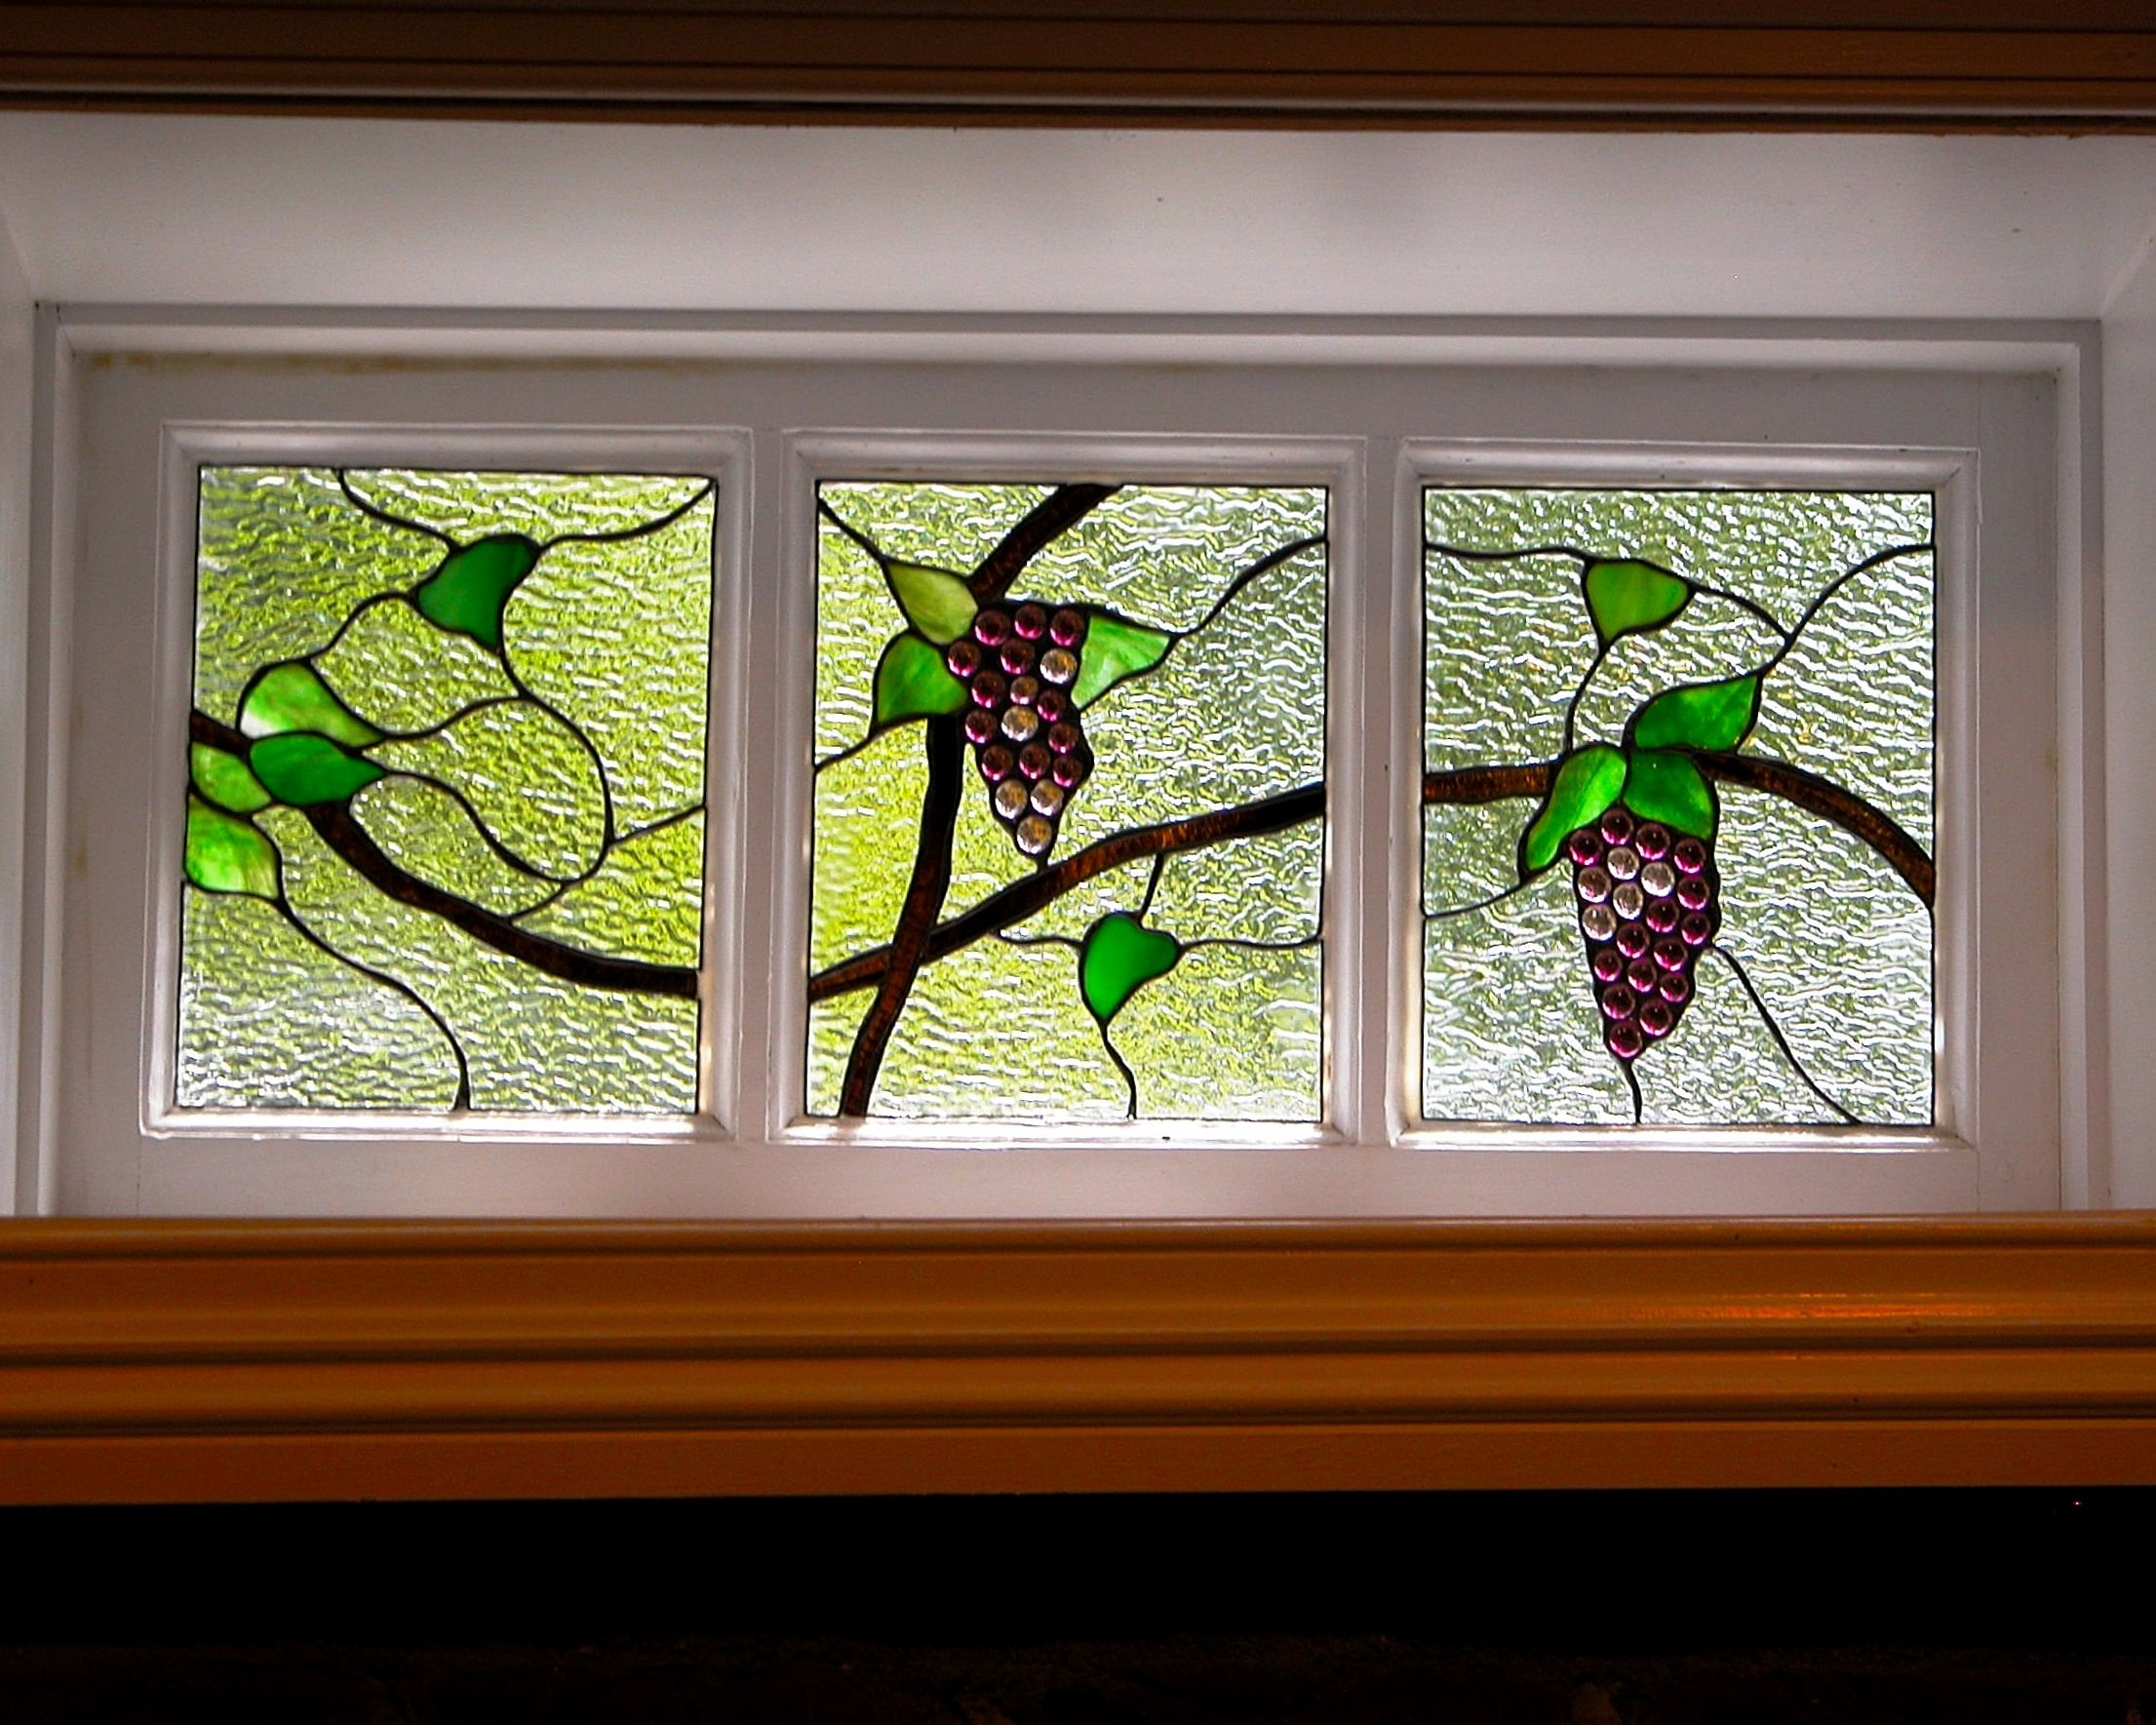 Leaded glass designs for windows - One Of Our Leaded Glass Designs Grapes Chestnut Hills